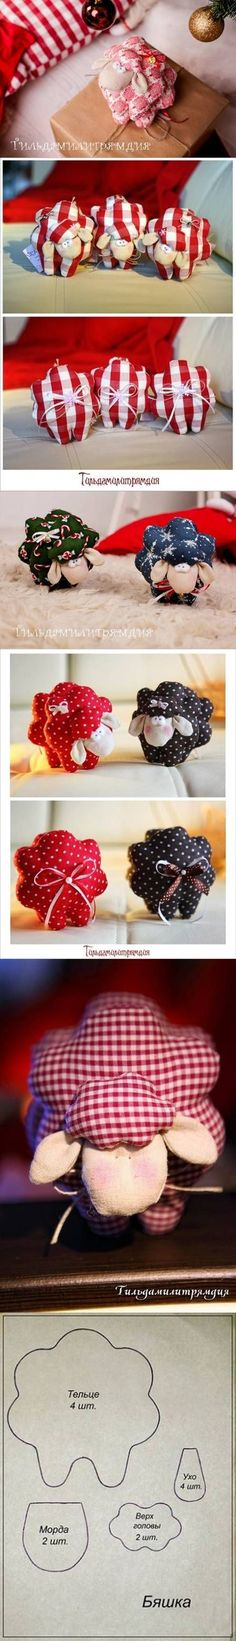 "<input+type=""hidden""+value=""""+data-frizzlyPostContainer=""""+data-frizzlyPostUrl=""http://www.usefuldiy.com/diy-cute-fabric-lamb/""+data-frizzlyPostTitle=""DIY+Cute+Fabric+Lamb""+data-frizzlyHoverContainer=""""><p>>>>+Craft+Tutorials+More+Free+Instructions+Free+Tutorials+More+Craft+Tutorials</p>"